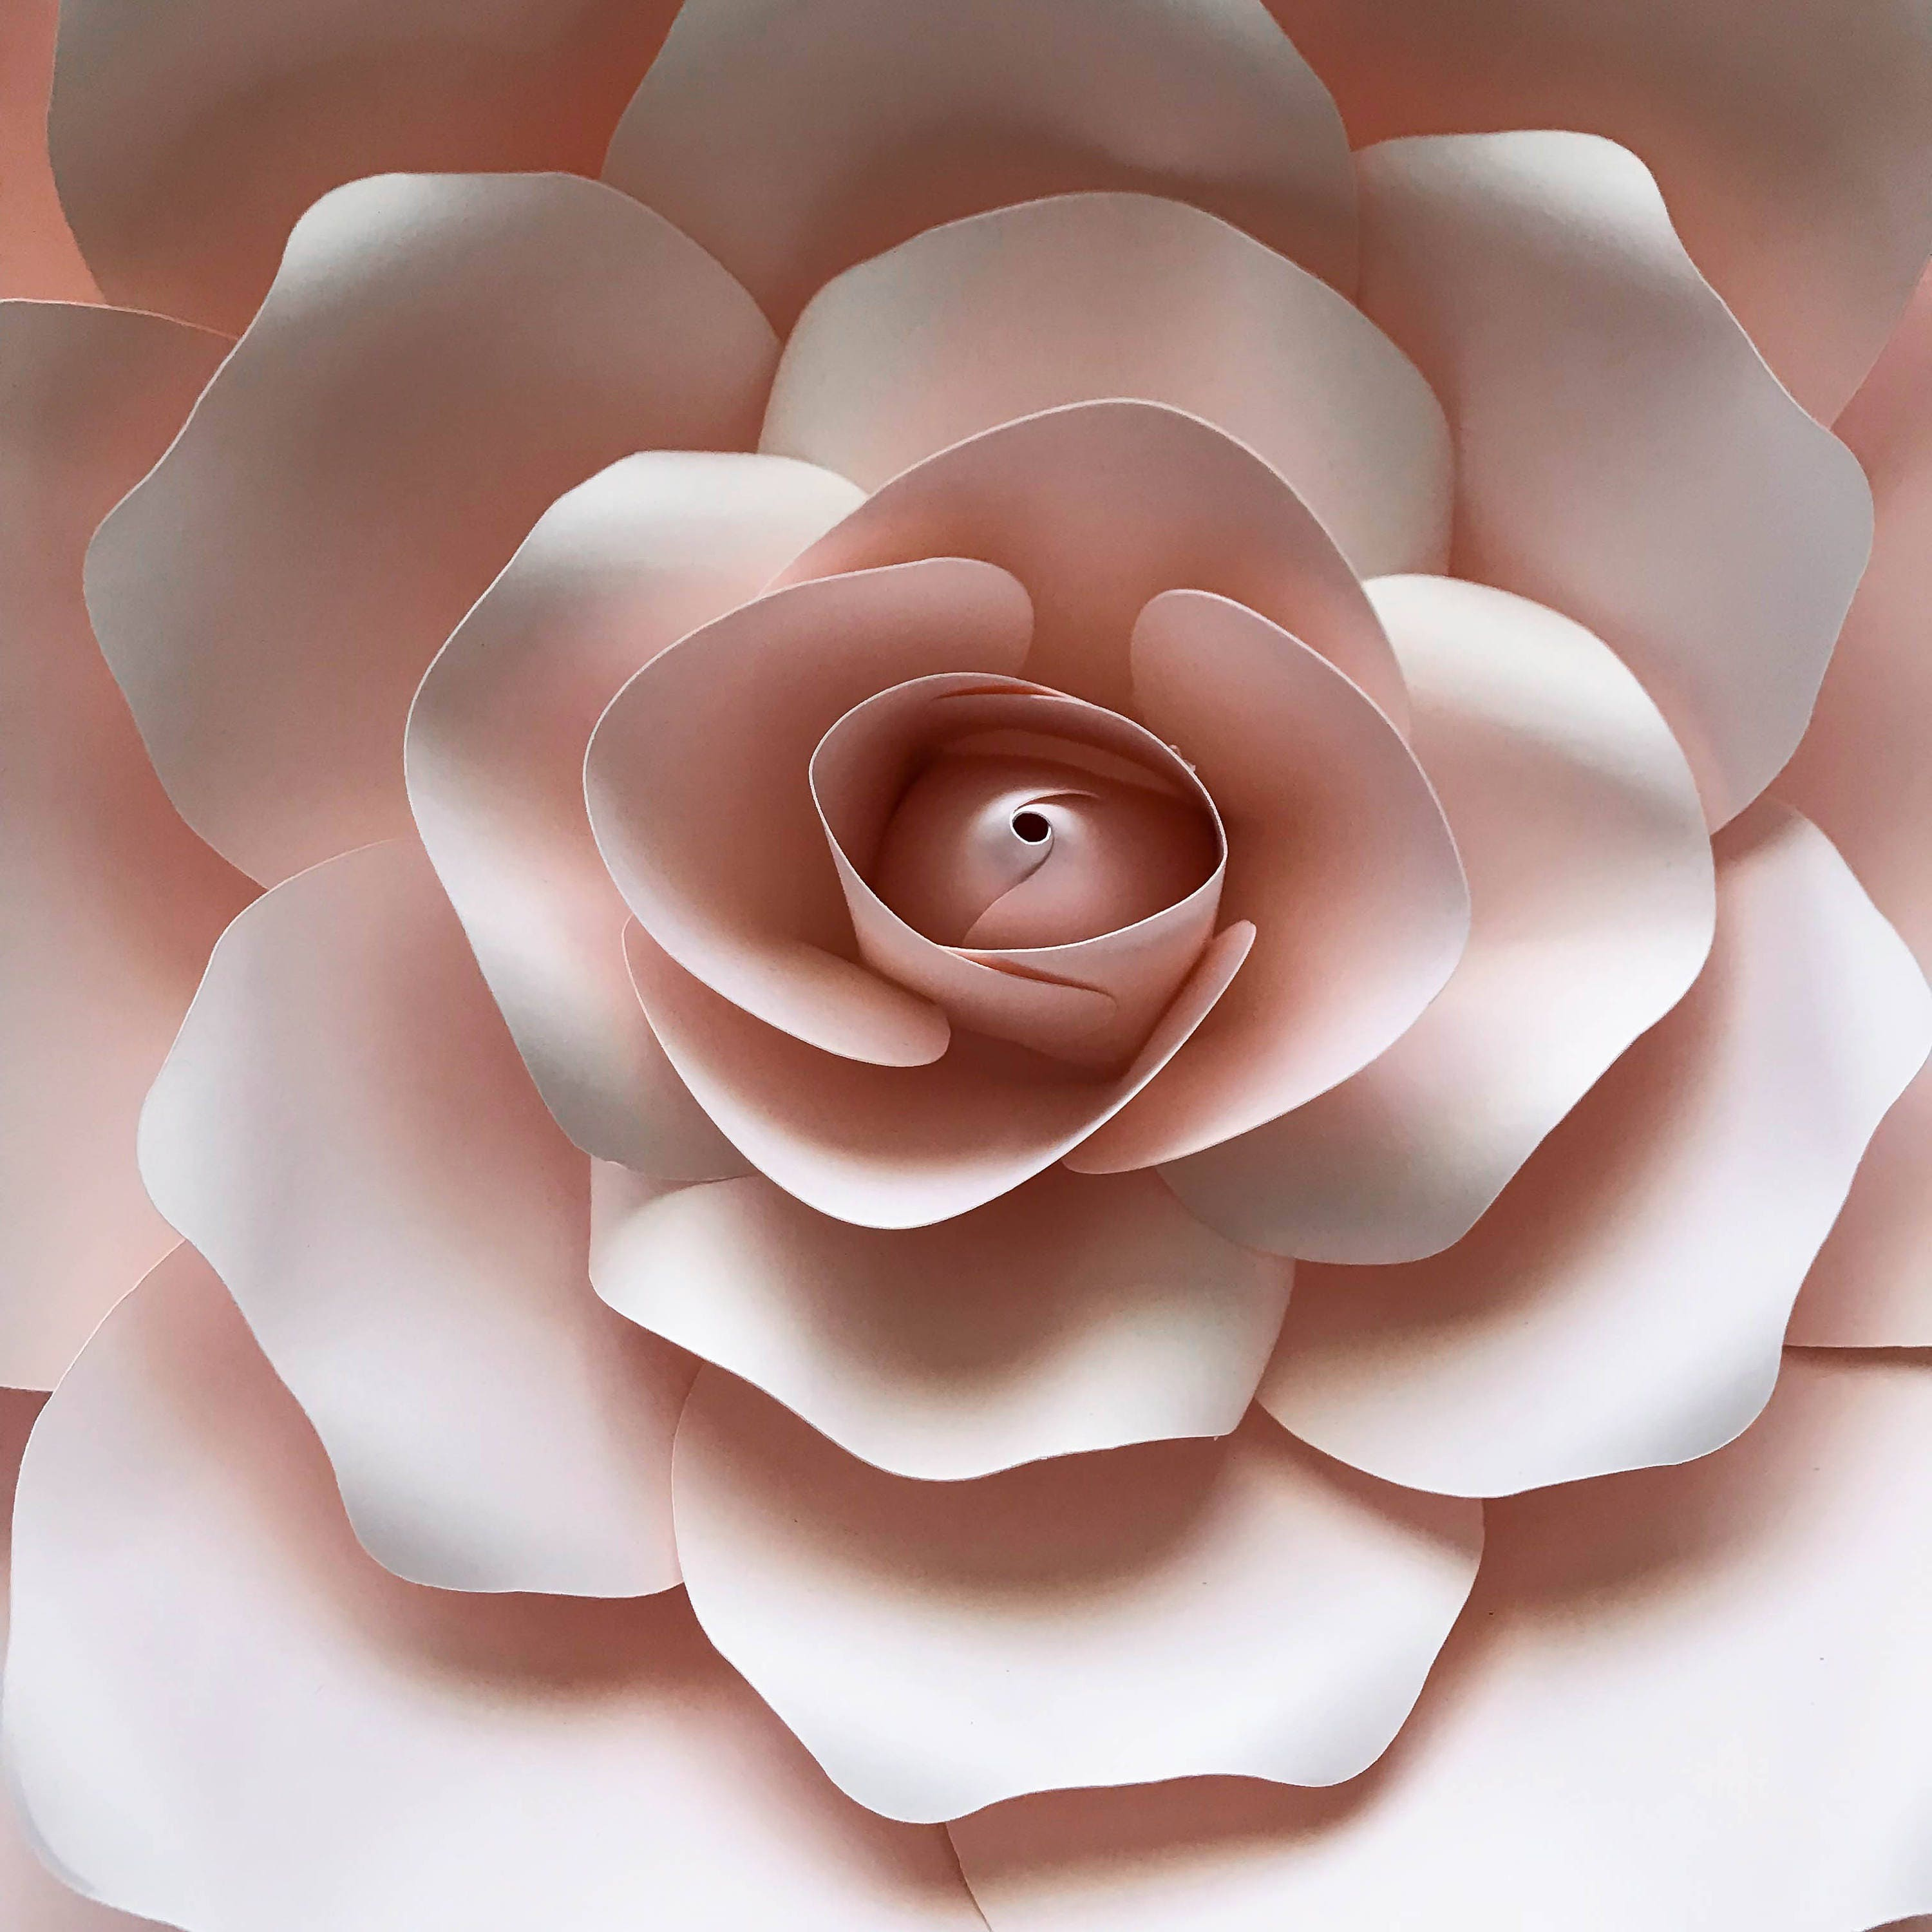 svg png dxf petal 19 cut file template for diy giant paper flowers w   rose bud  bases n flat